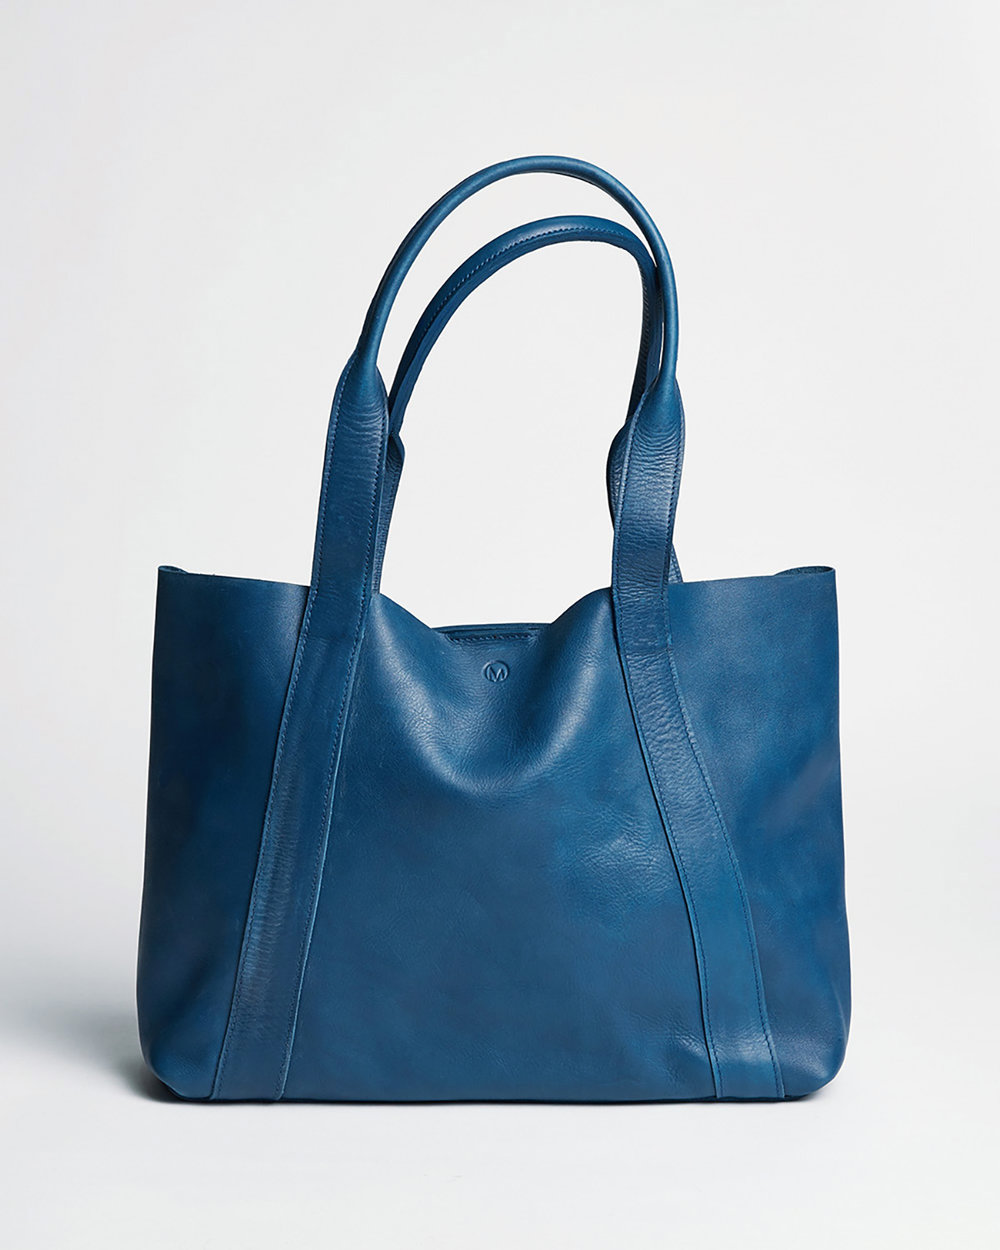 TOTE-FRONT-BLUE.jpg